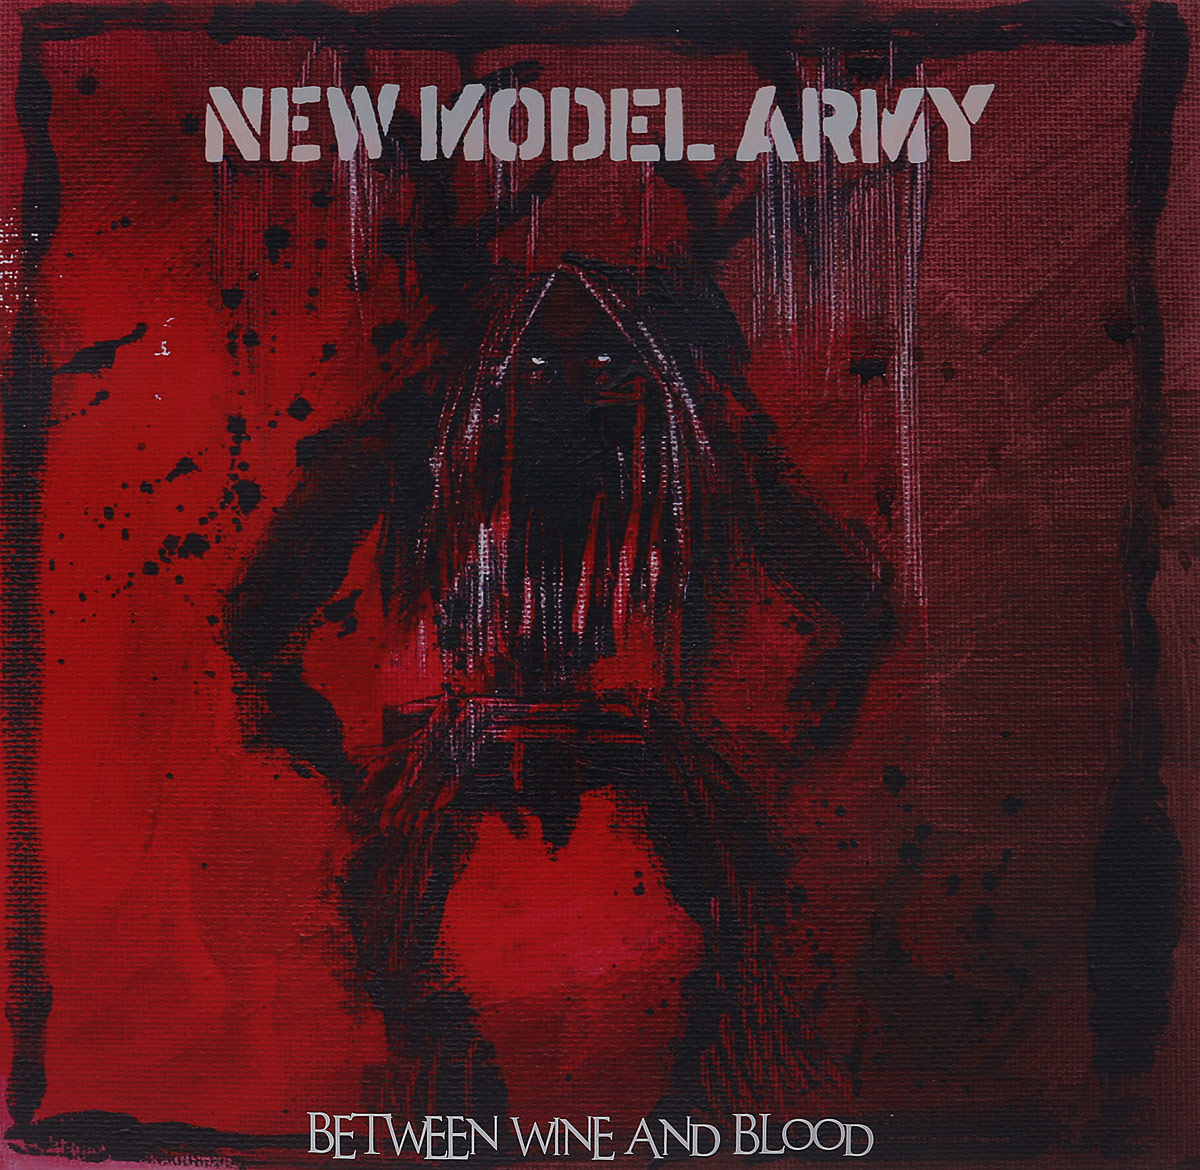 New Model Army New Model Army. Between Wine And Blood (2 LP) 47cm b777 aircraft model new zealand airlines model air new zealand boeing 777 airplane airways model aviation airbus toys gifts